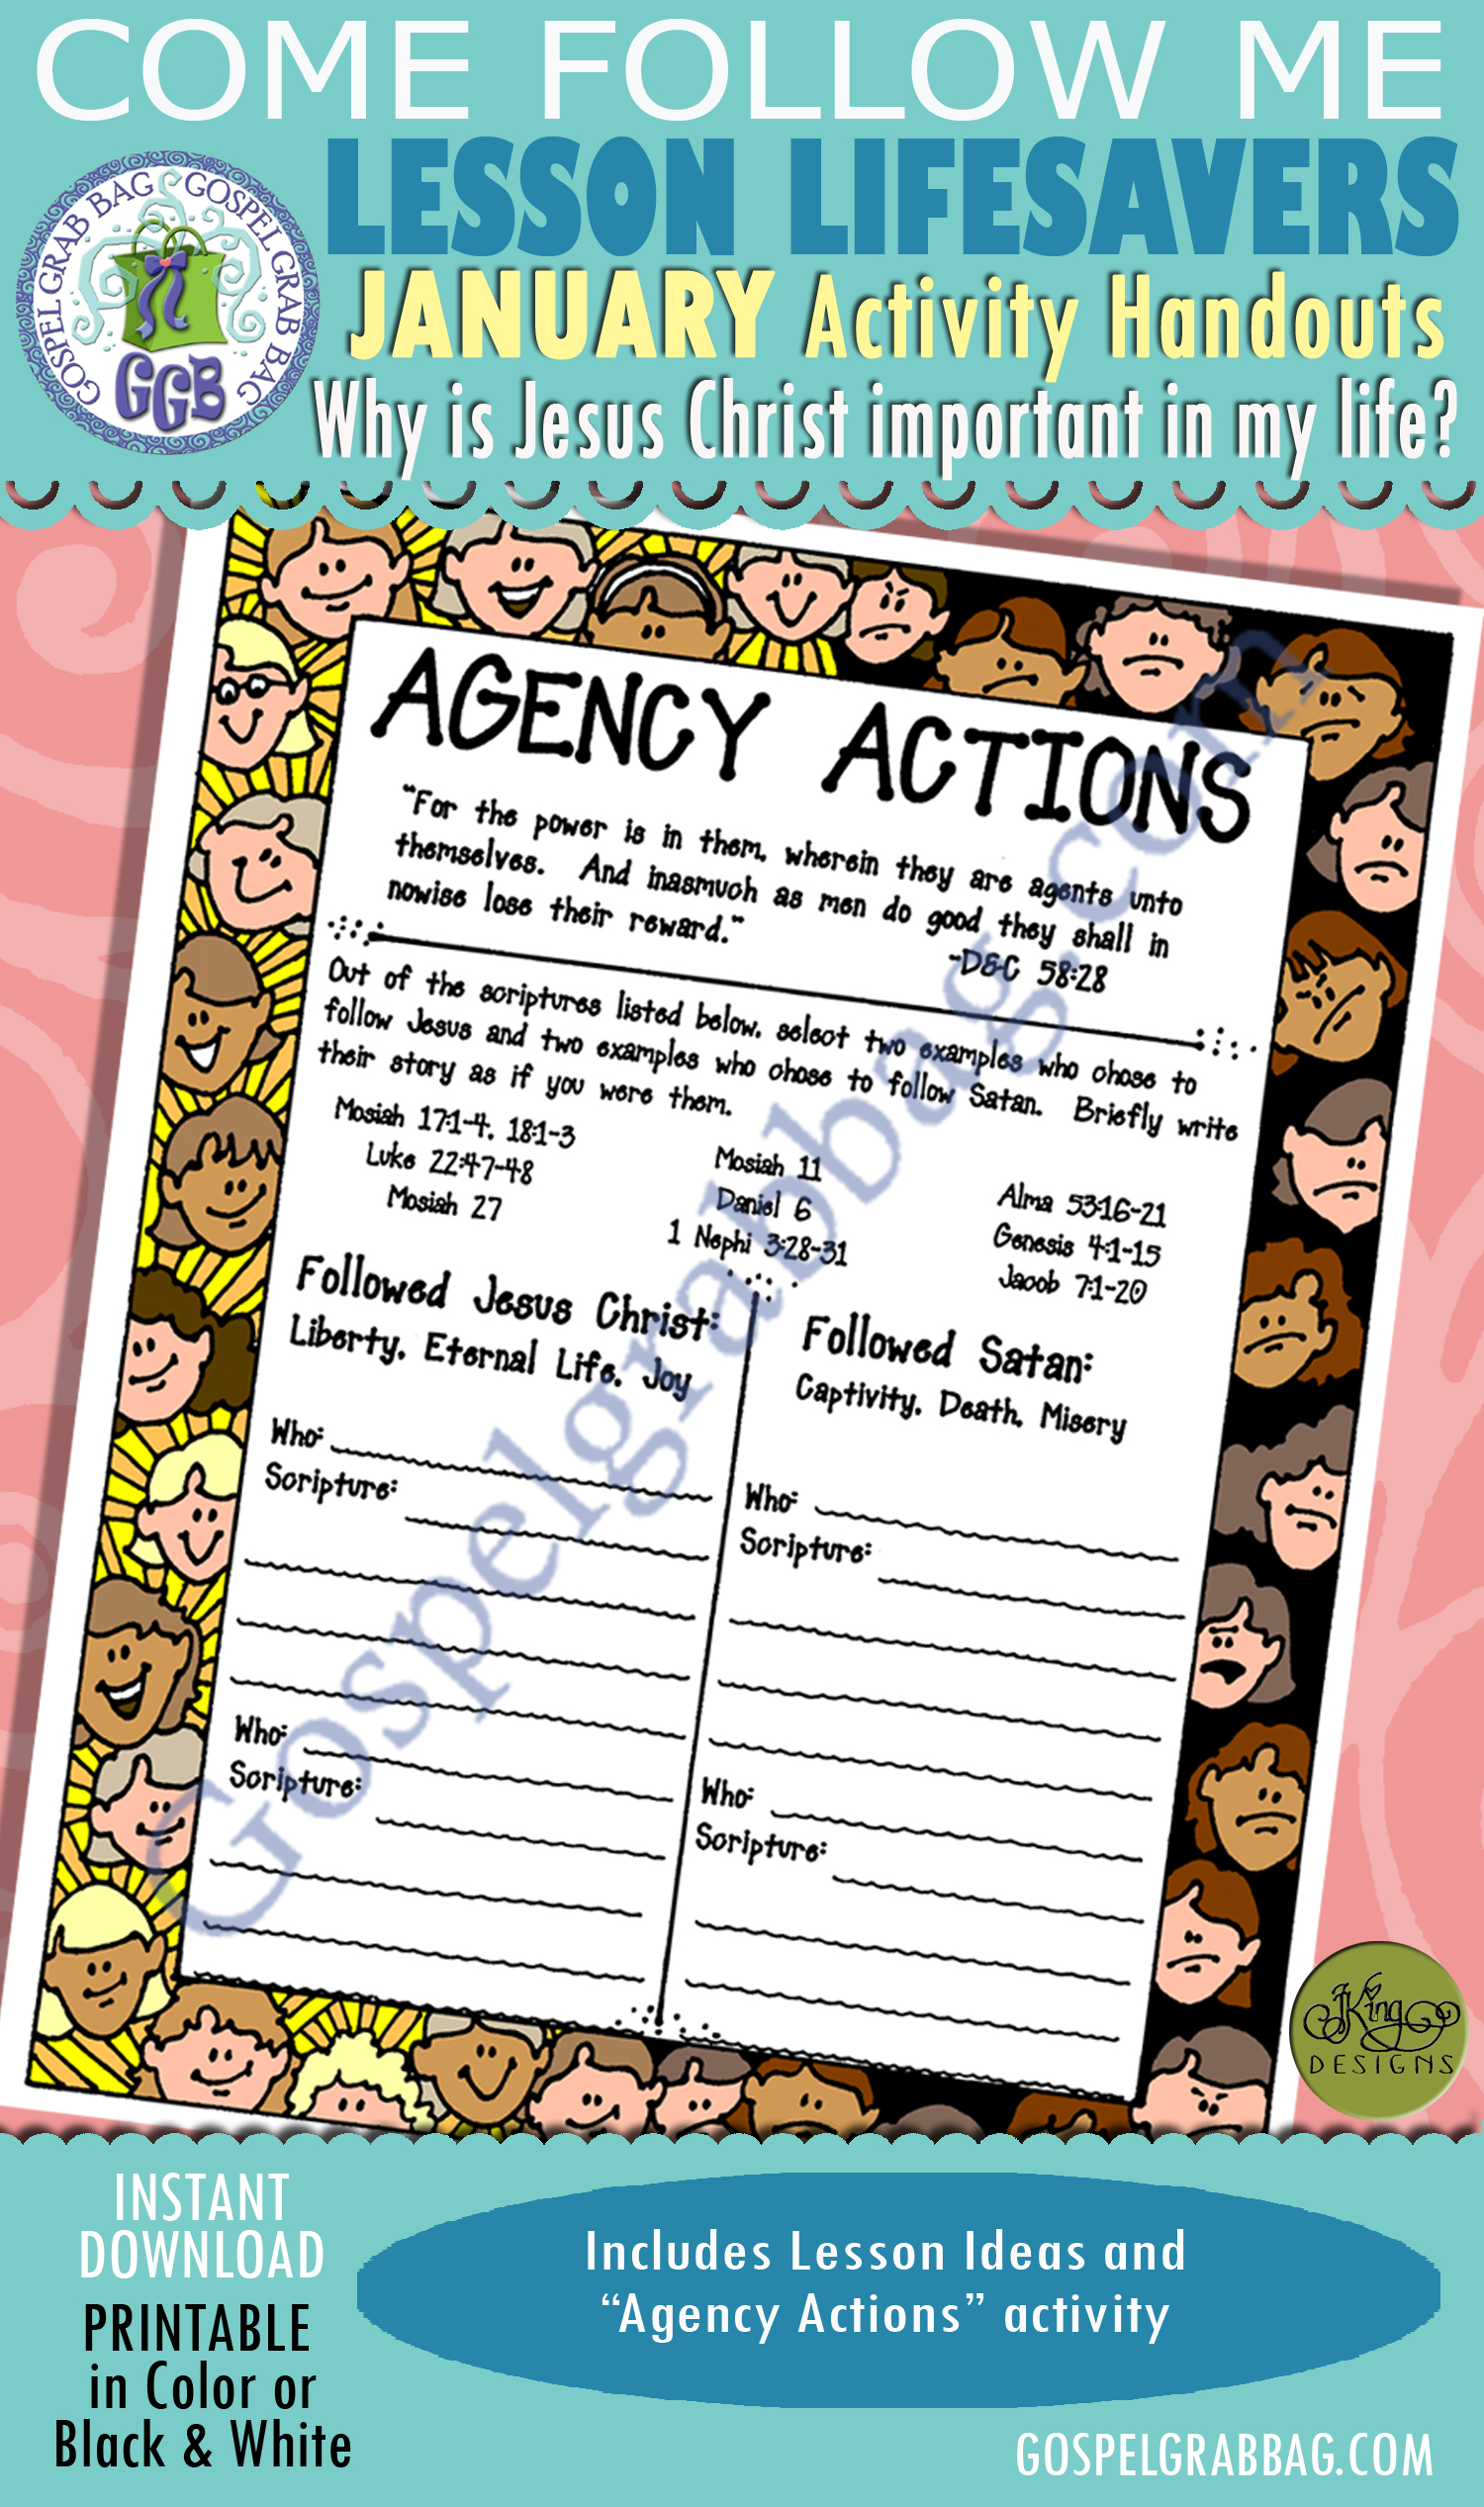 """$1.75 January Lesson 3 - Come Follow Me """"Why is Jesus Christ important in my life?"""" ACTIVITY: Following Jesus - Agency Actions scripture challenge"""